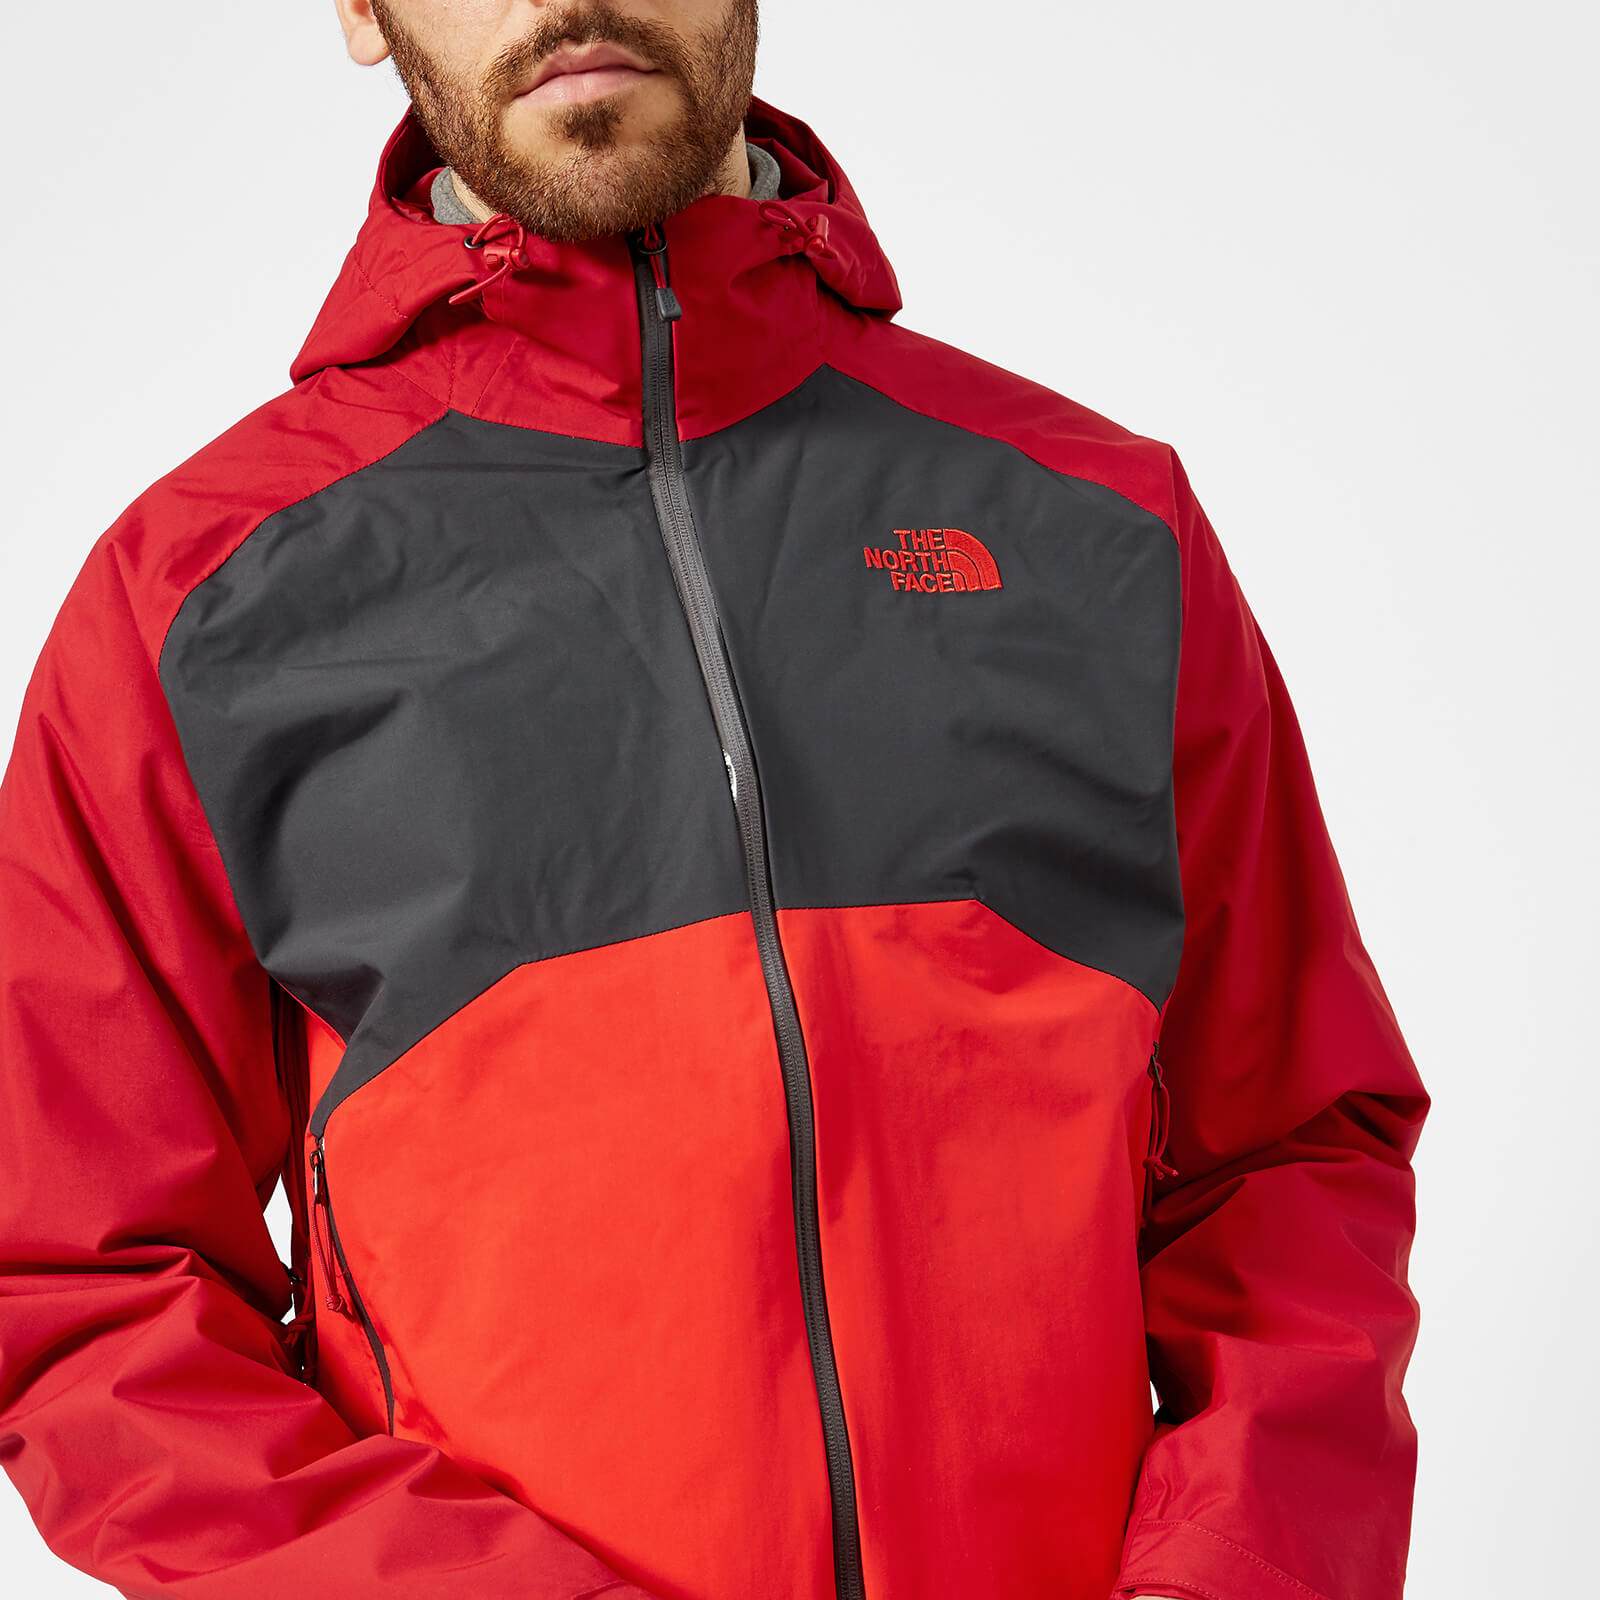 sprzedawca hurtowy uznane marki innowacyjny design The North Face Men's Stratos Jacket - Rage Red/Asphalt Grey/High Risk Red